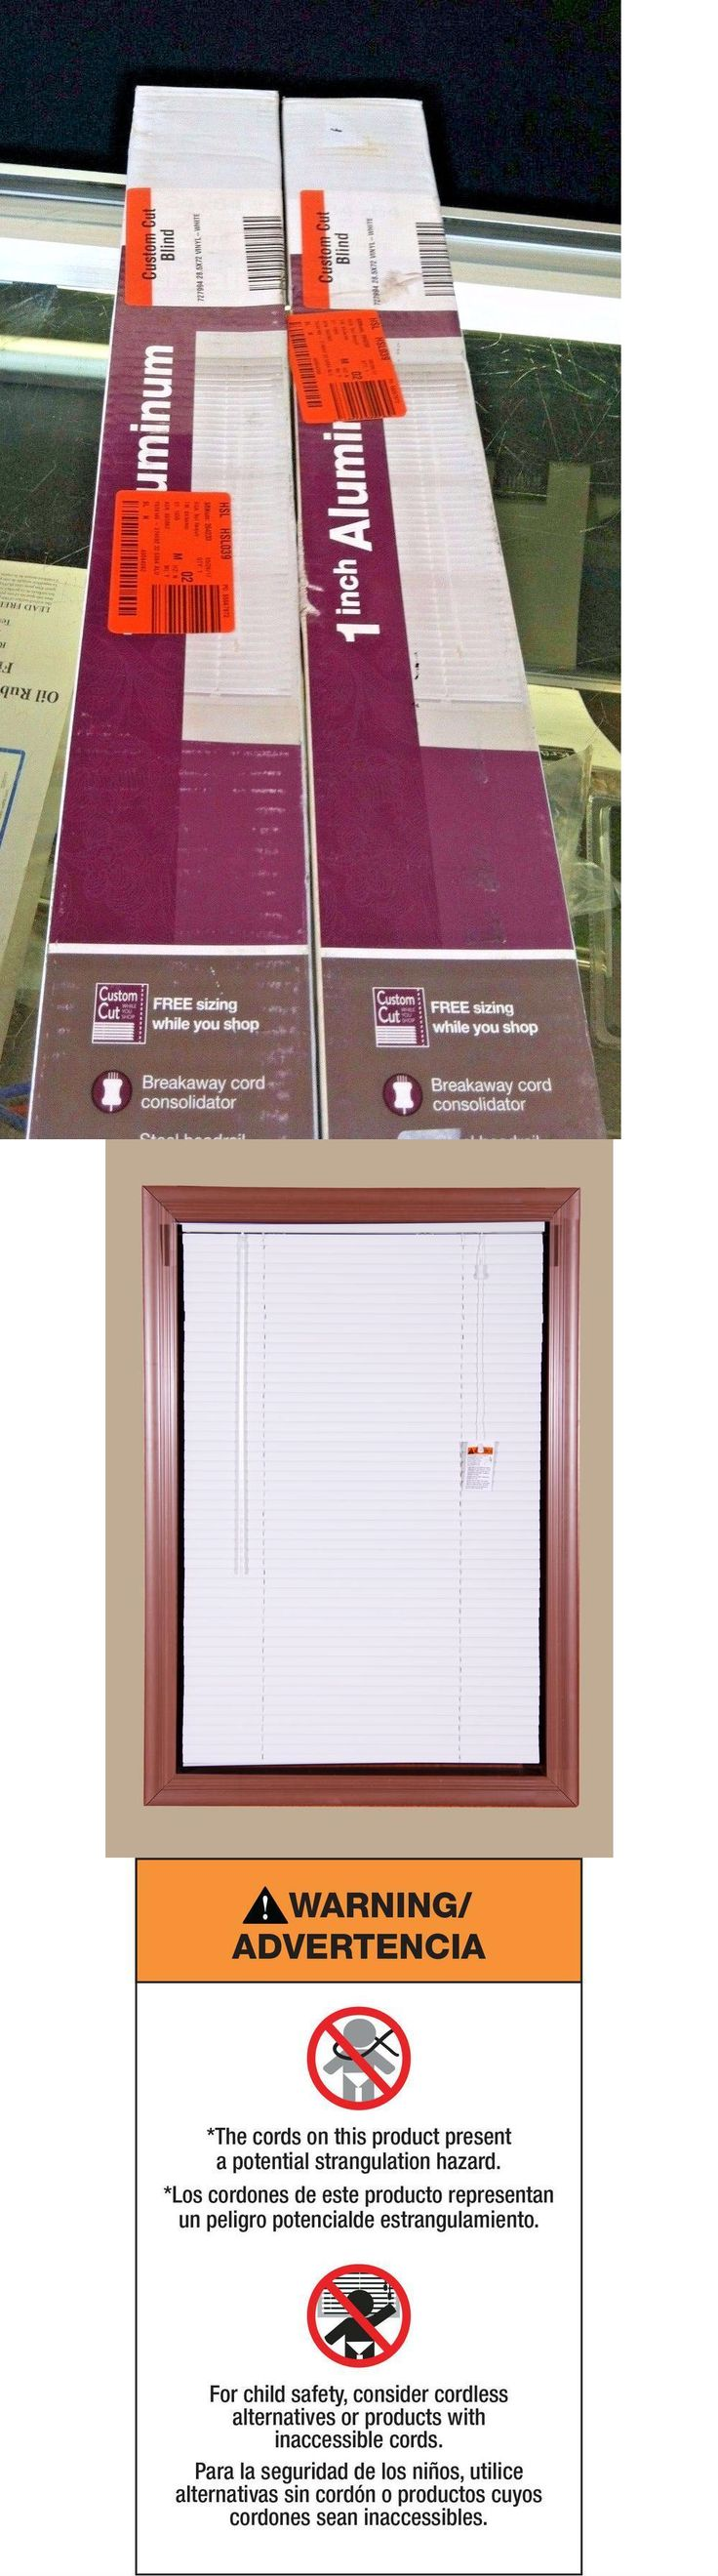 Blinds and Shades 20585: Bali Today Room Darkening 1 Aluminum Mini Blind White 28.6 In X 64 Ins 2 Pack -> BUY IT NOW ONLY: $35.99 on eBay!